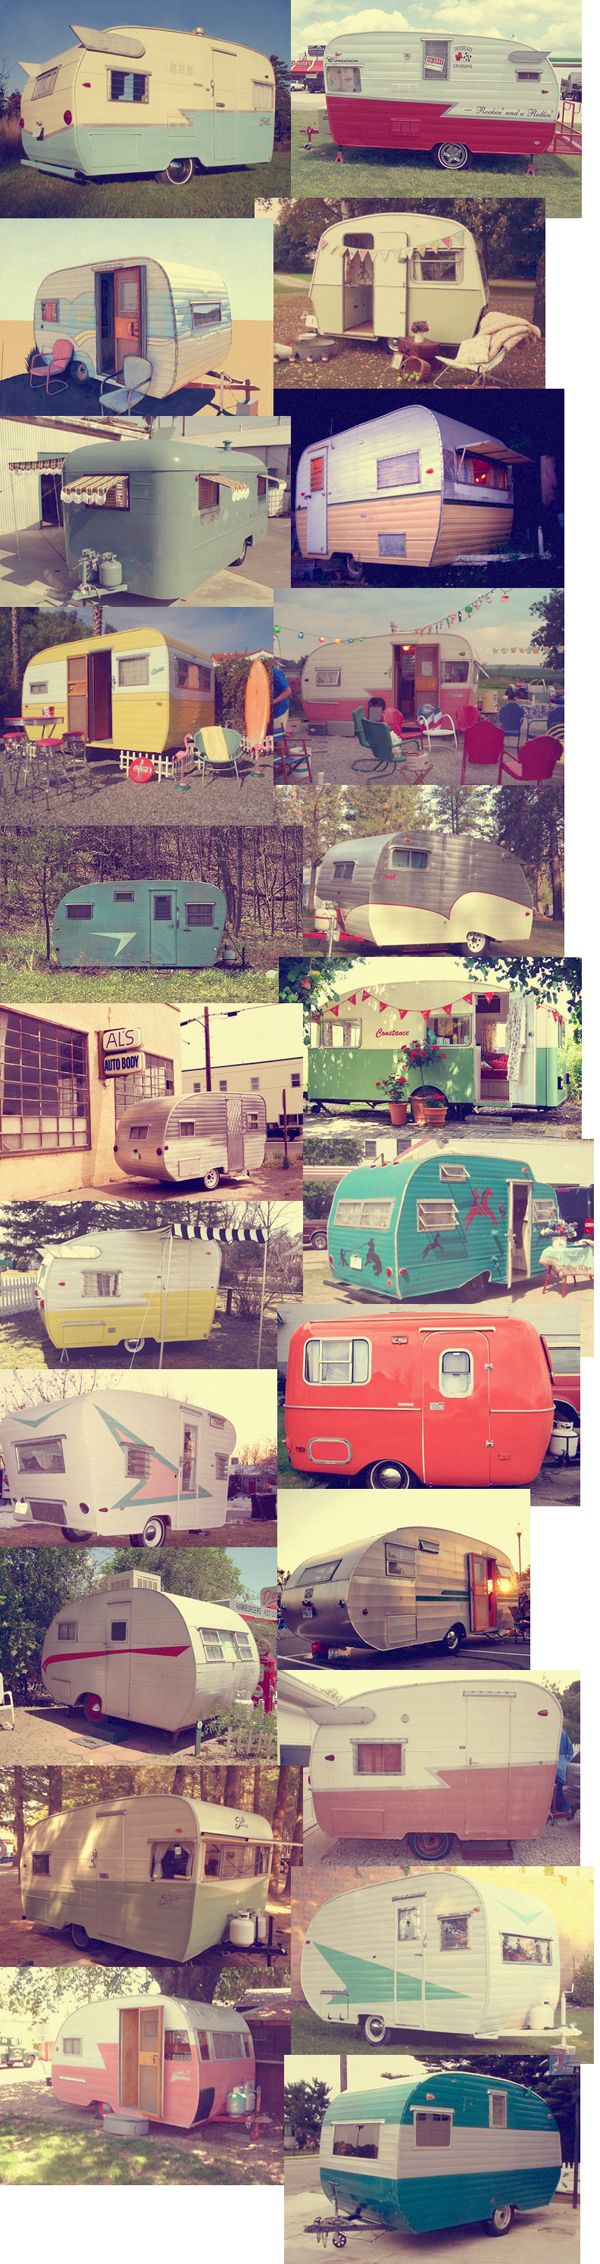 Posted in retro vintage tagged classic cars teardrop caravan vintage - Find This Pin And More On Hit The Road By Thenoshery